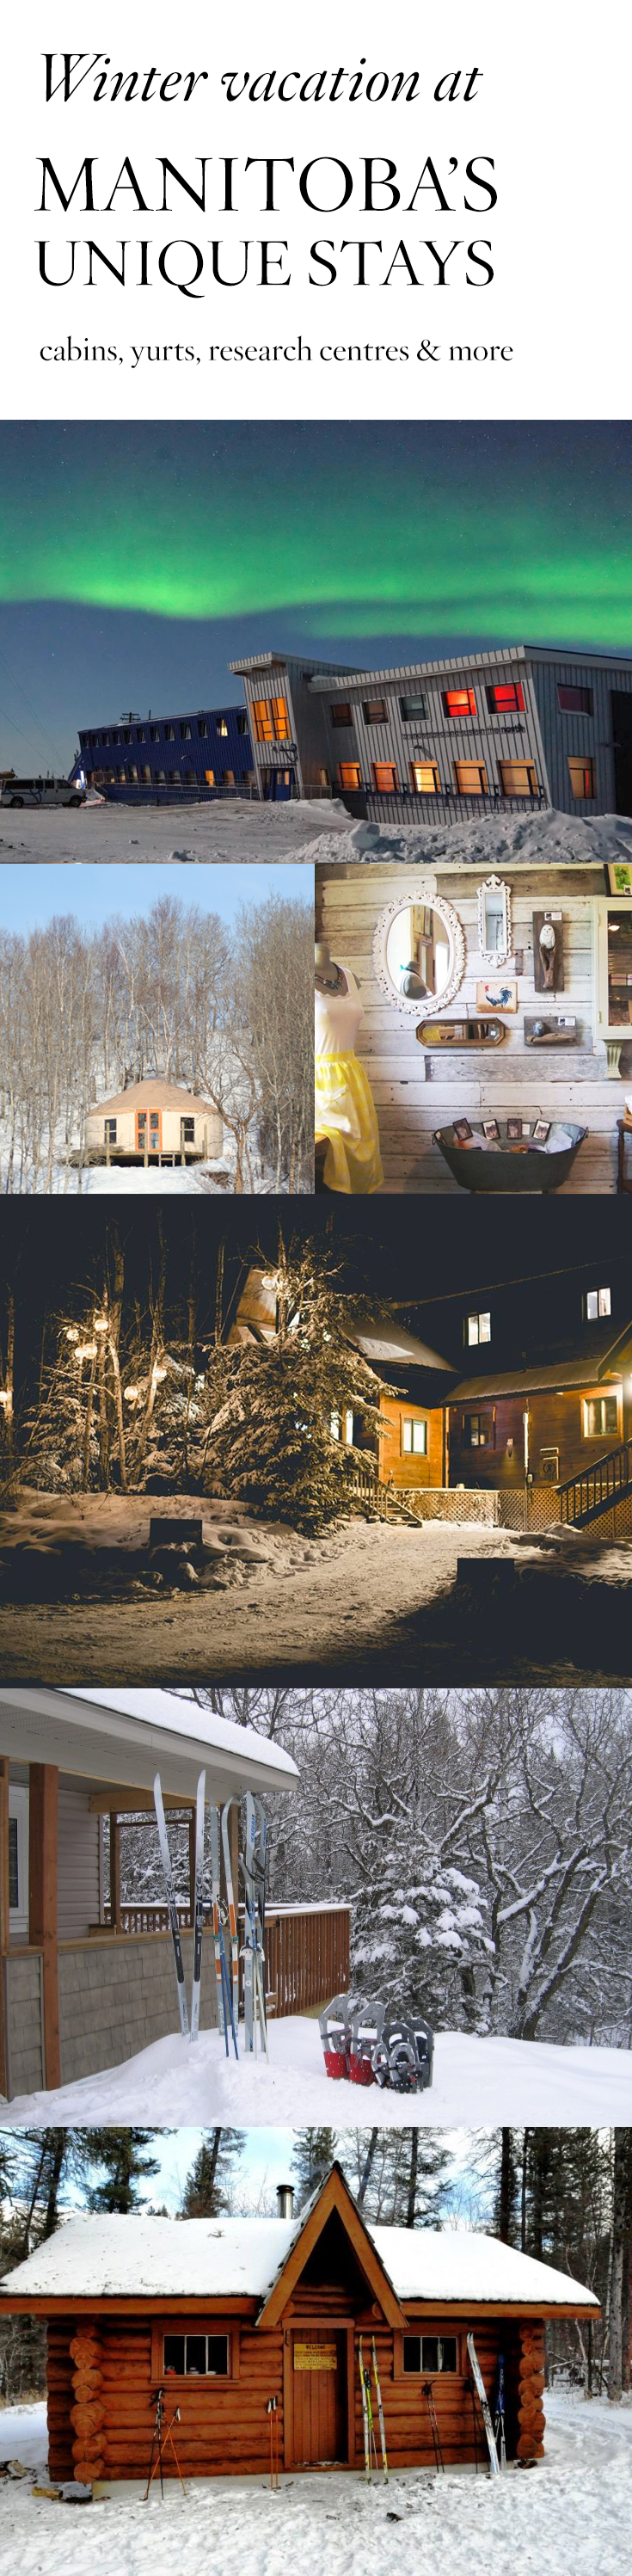 Yurts, cabins and research centres: Plan a winter vacation to Manitoba, Canada